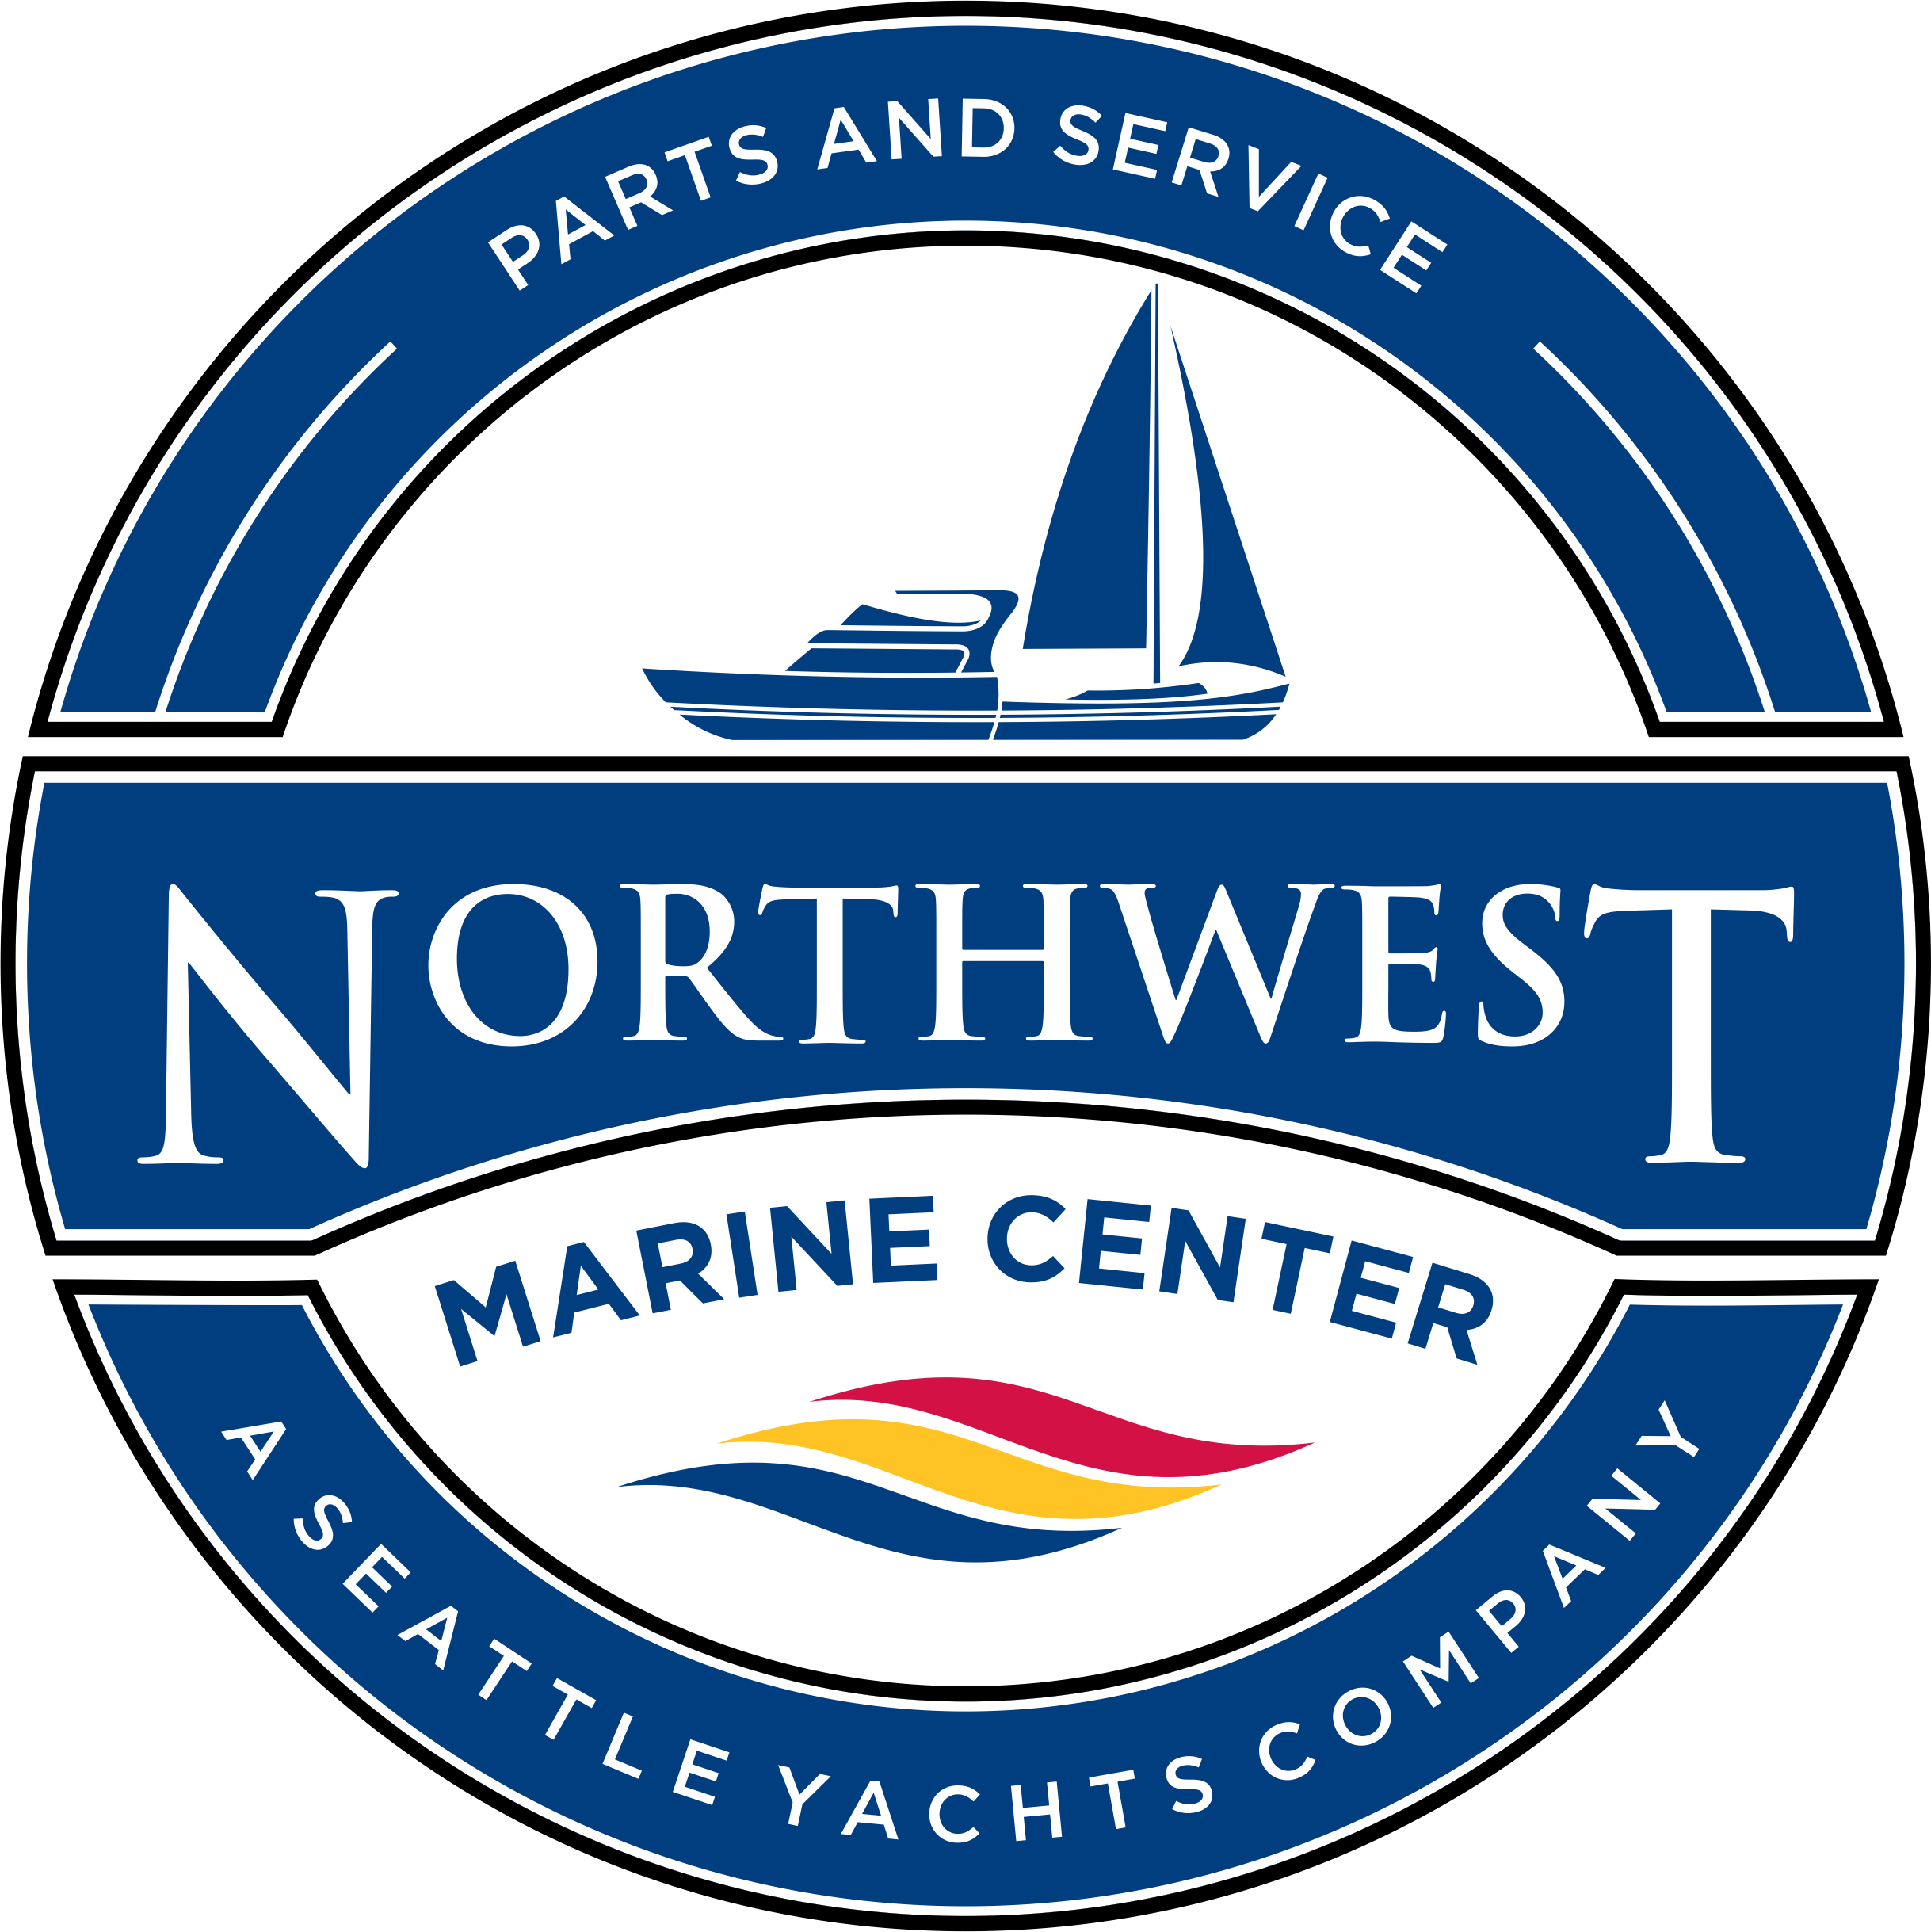 Northwest Marine Center